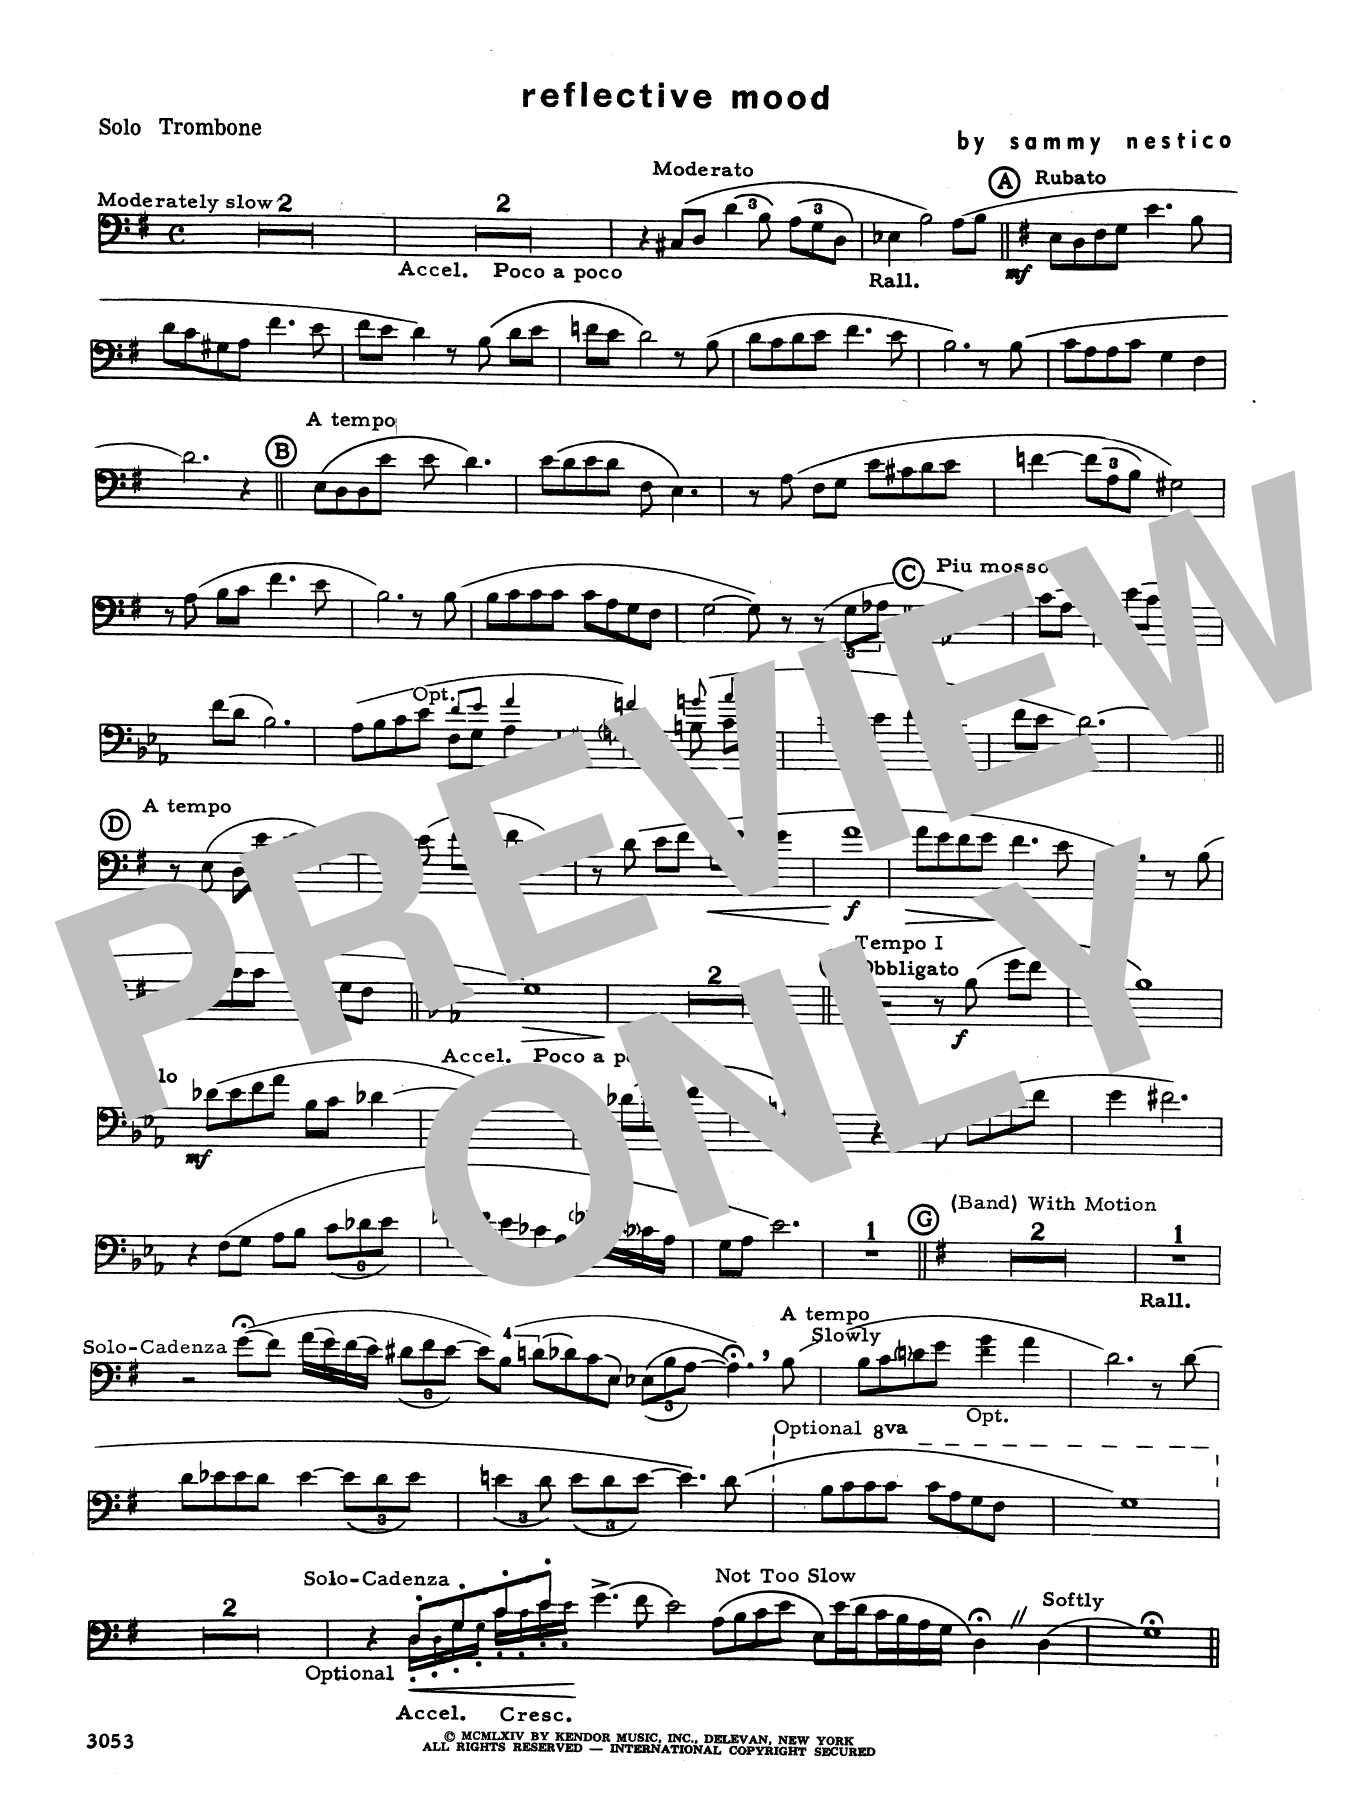 Reflective Mood (complete set of parts) sheet music for trombone and piano by Sammy Nestico